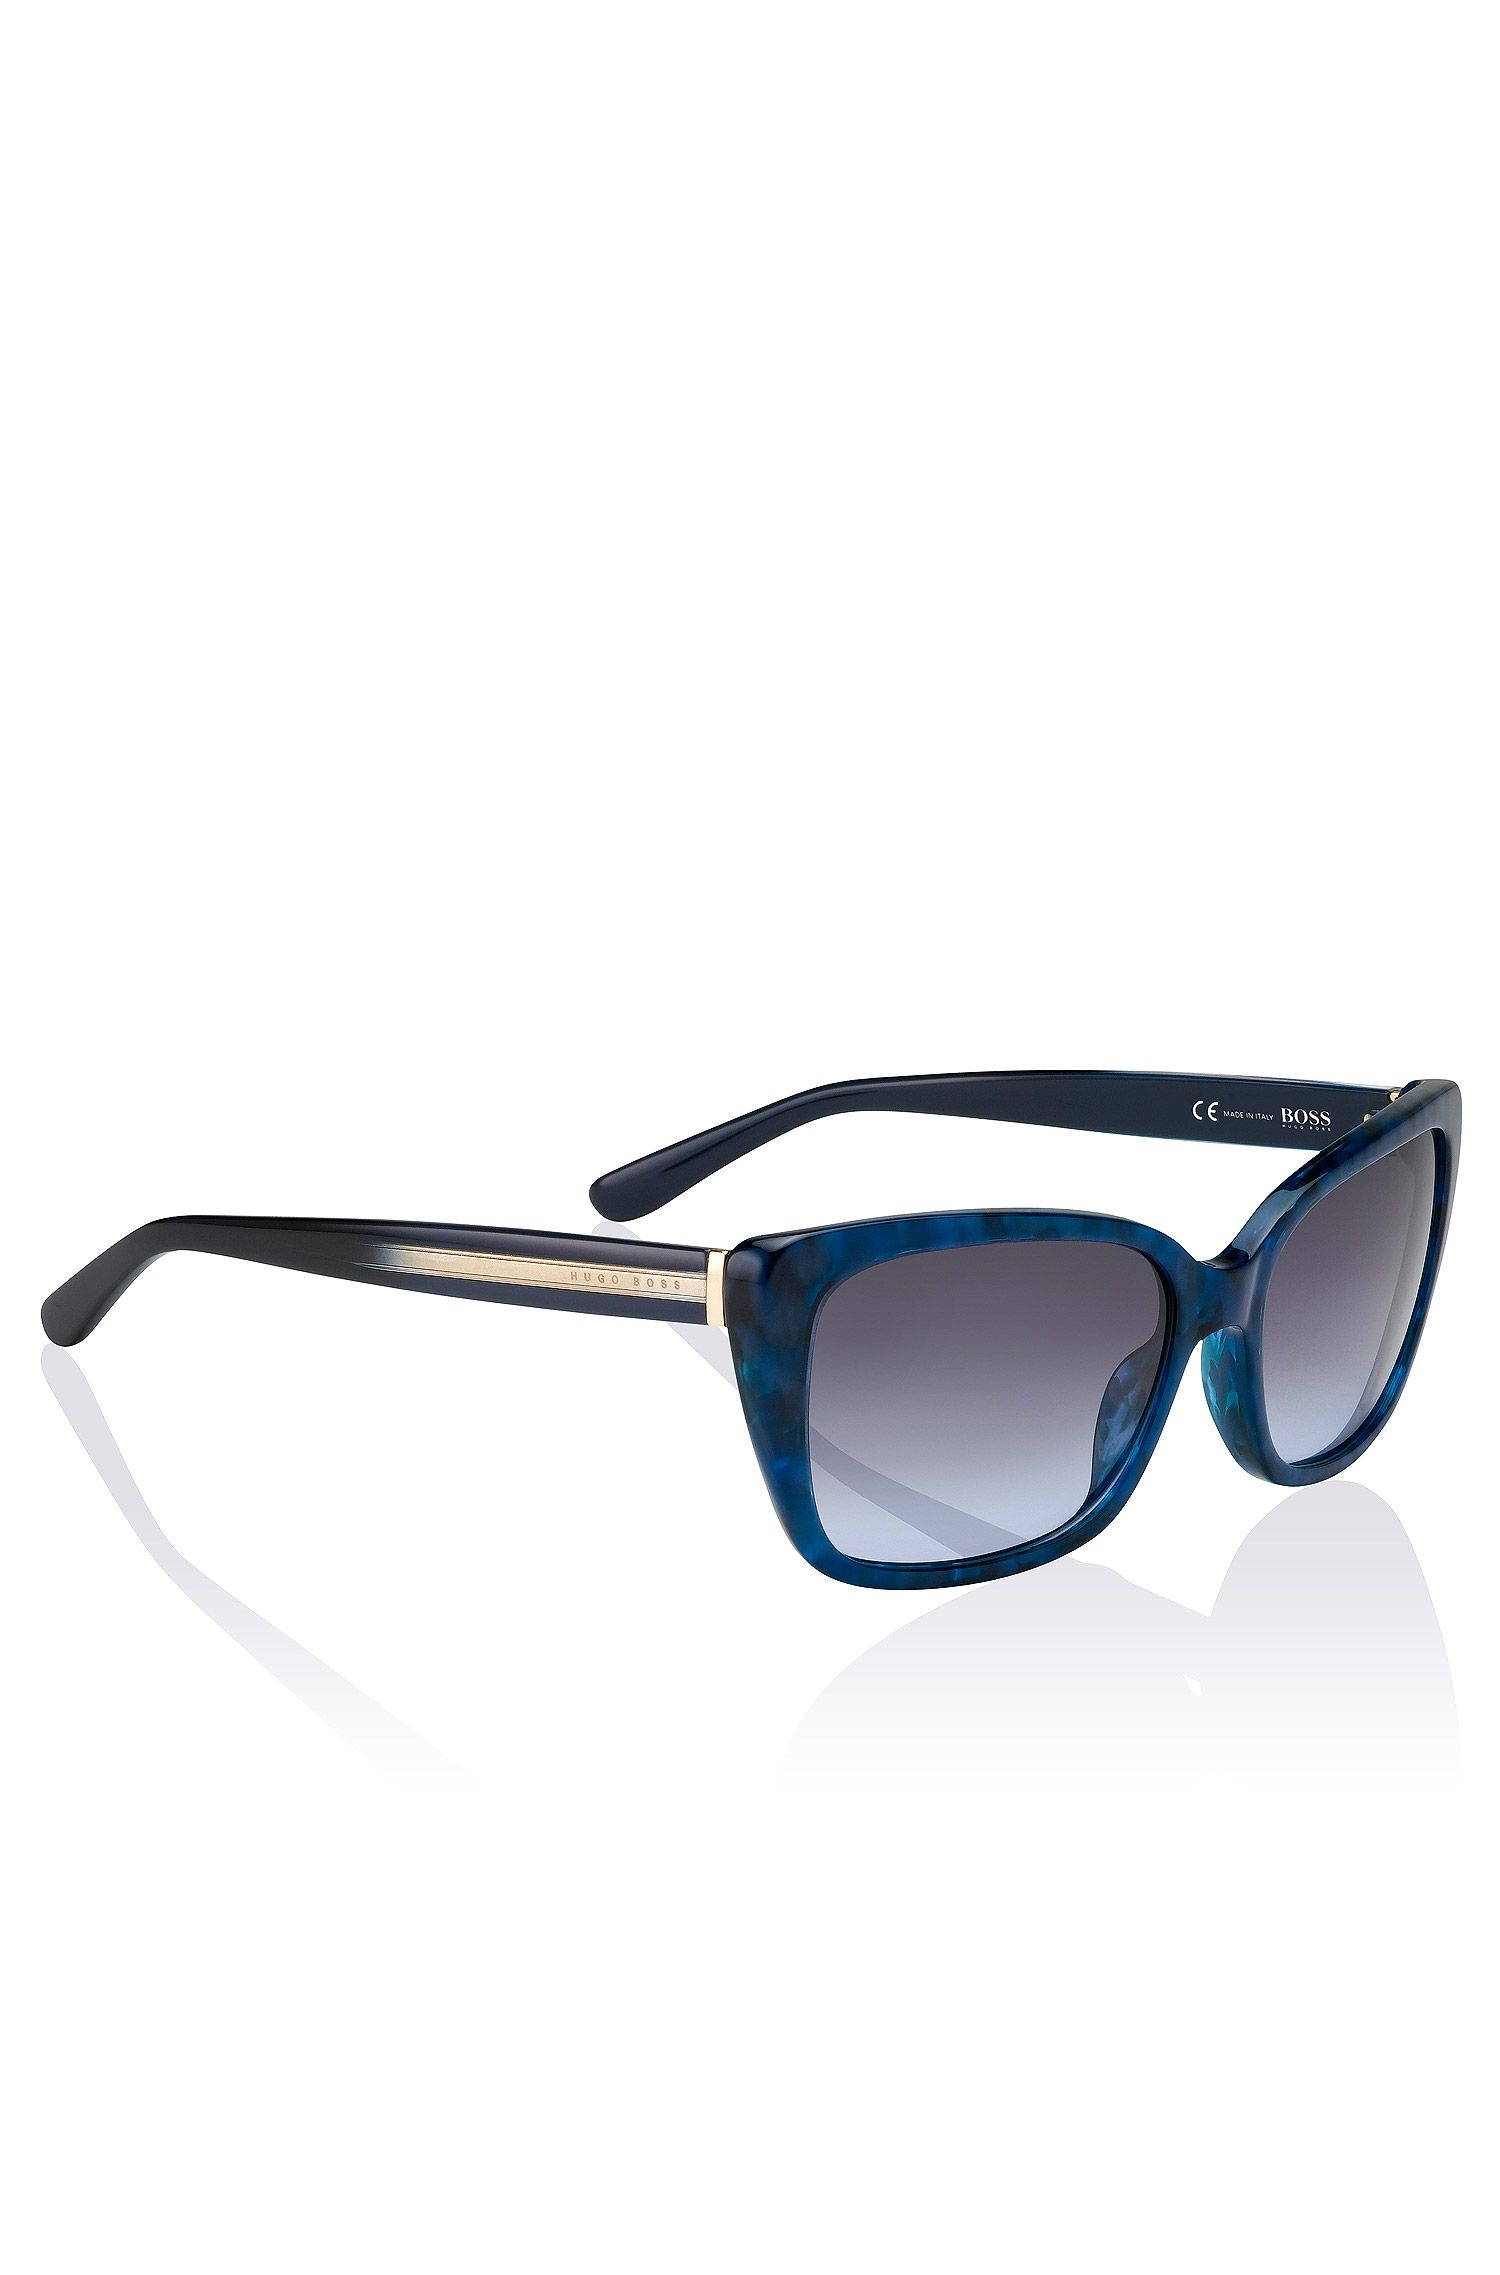 Sunglasses 'BOSS 0612/S'